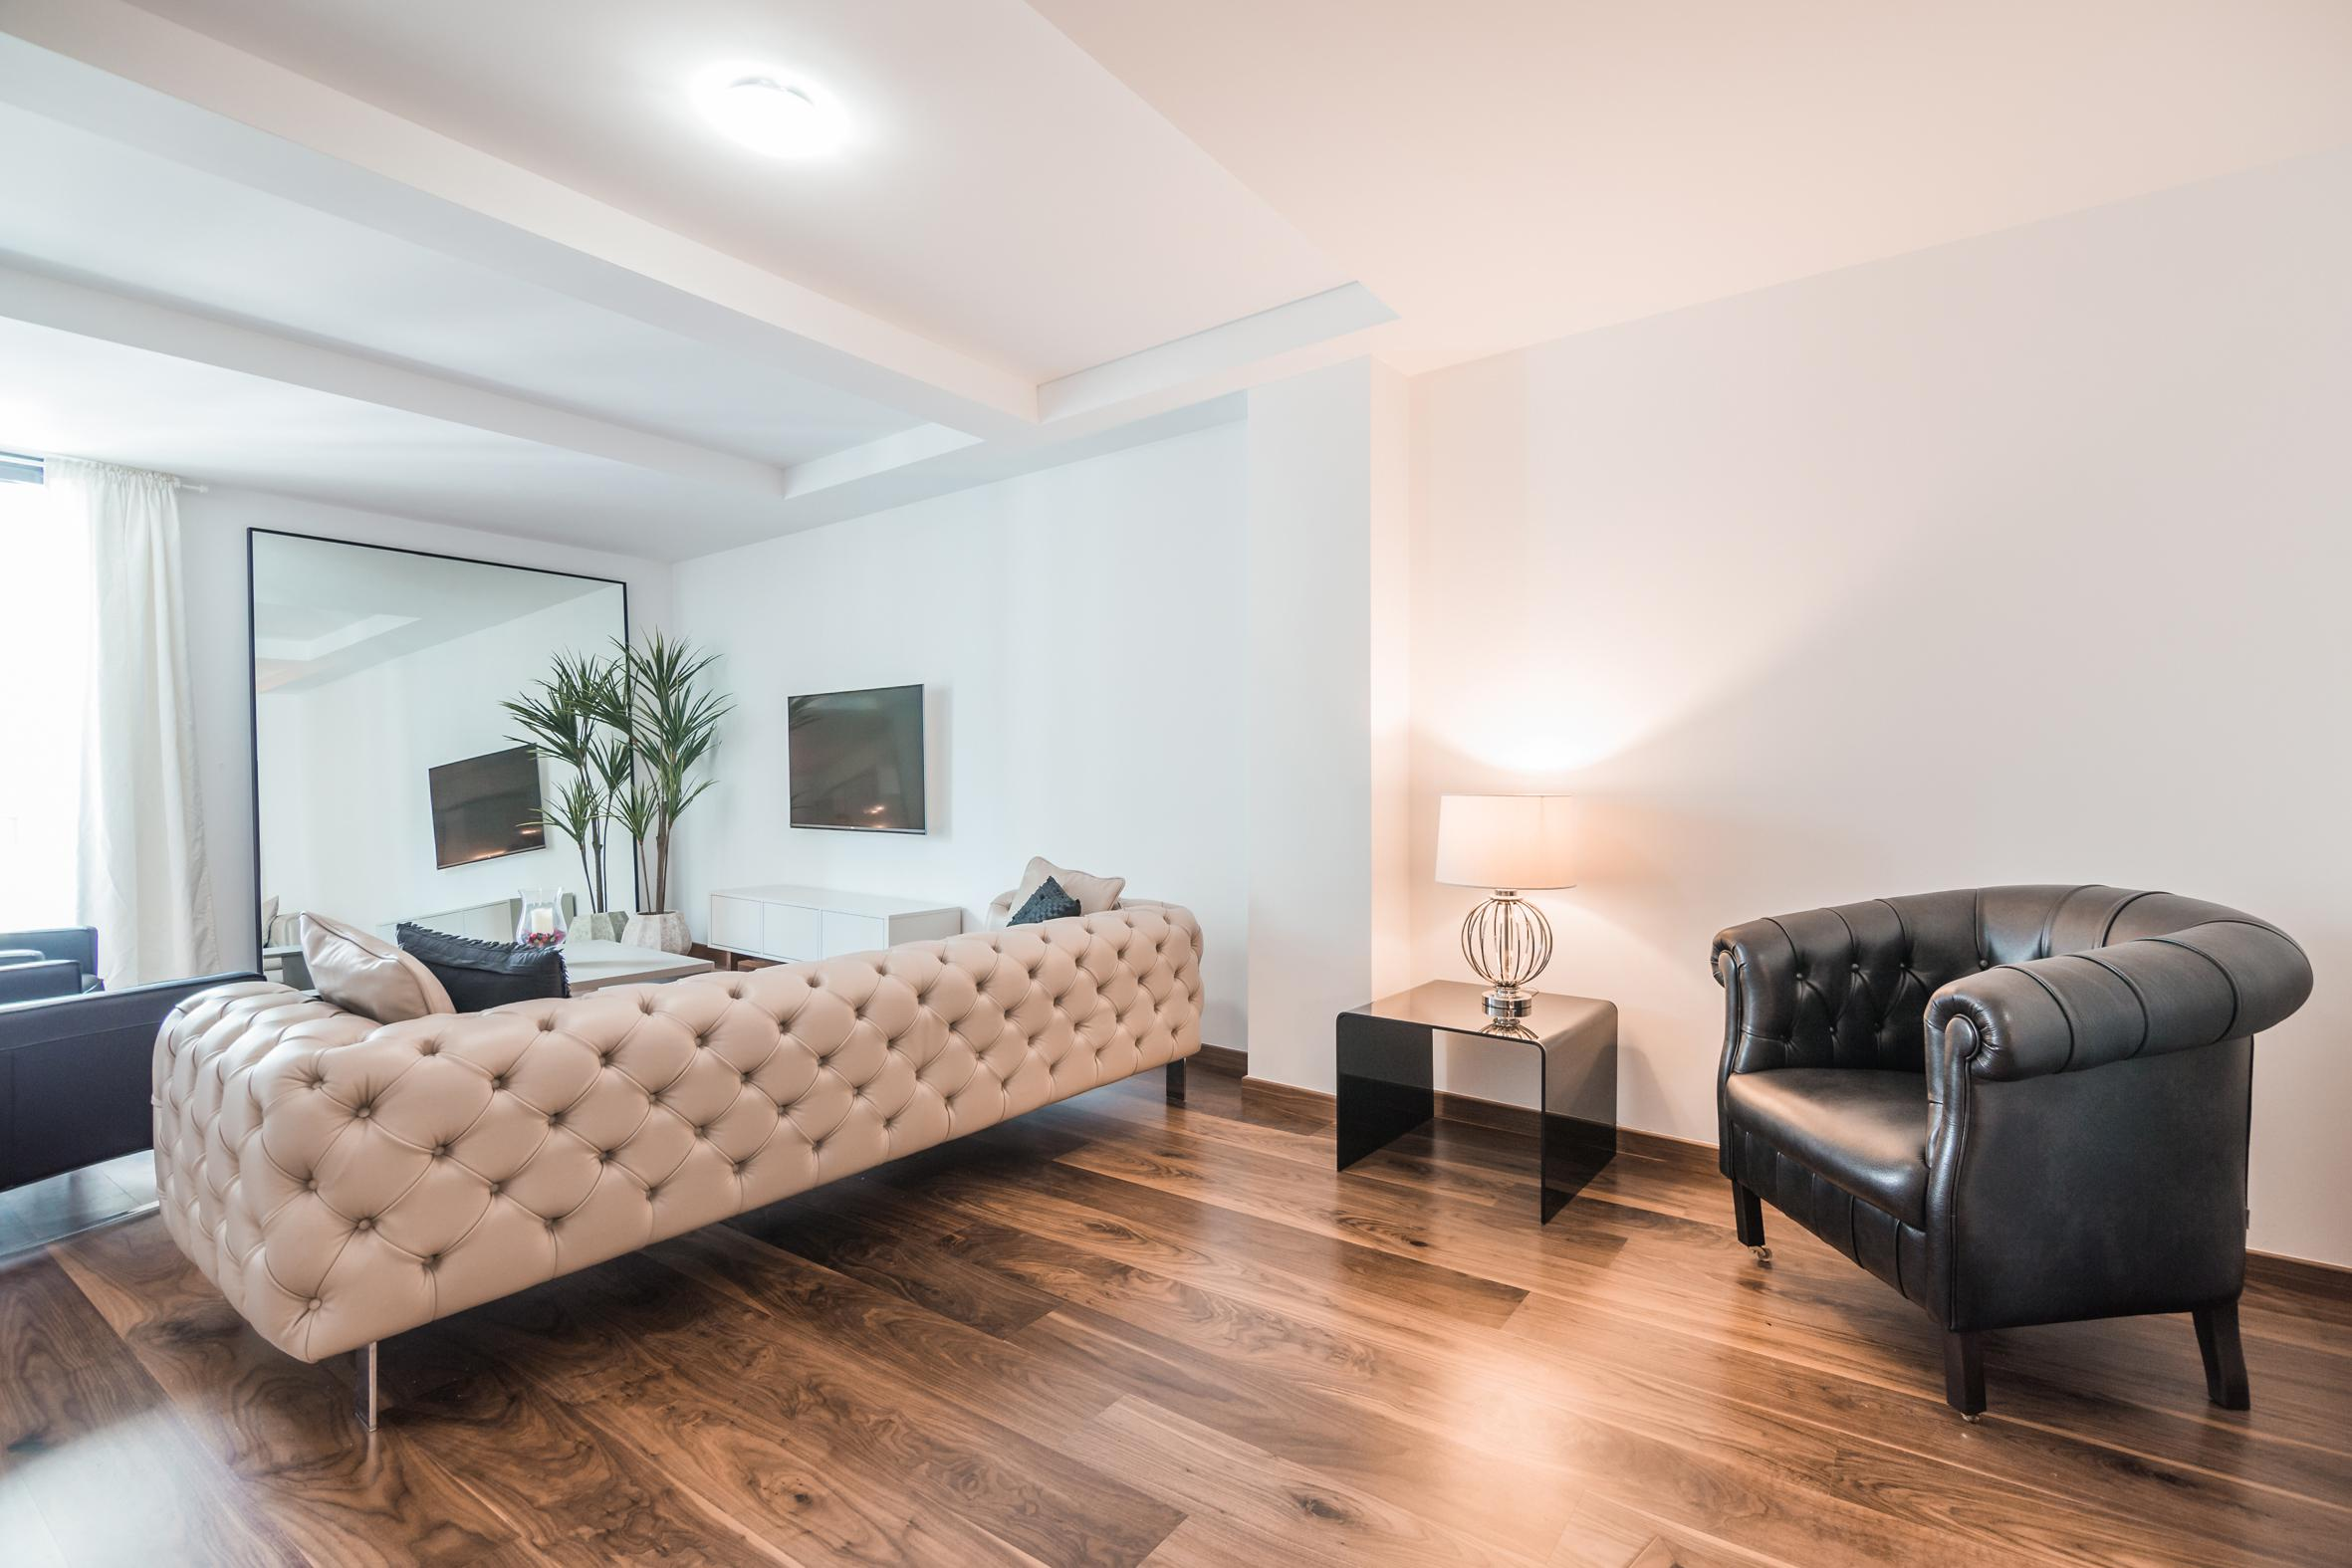 194056 Flat for sale in Ciutat Vella, Barri Gótic 17